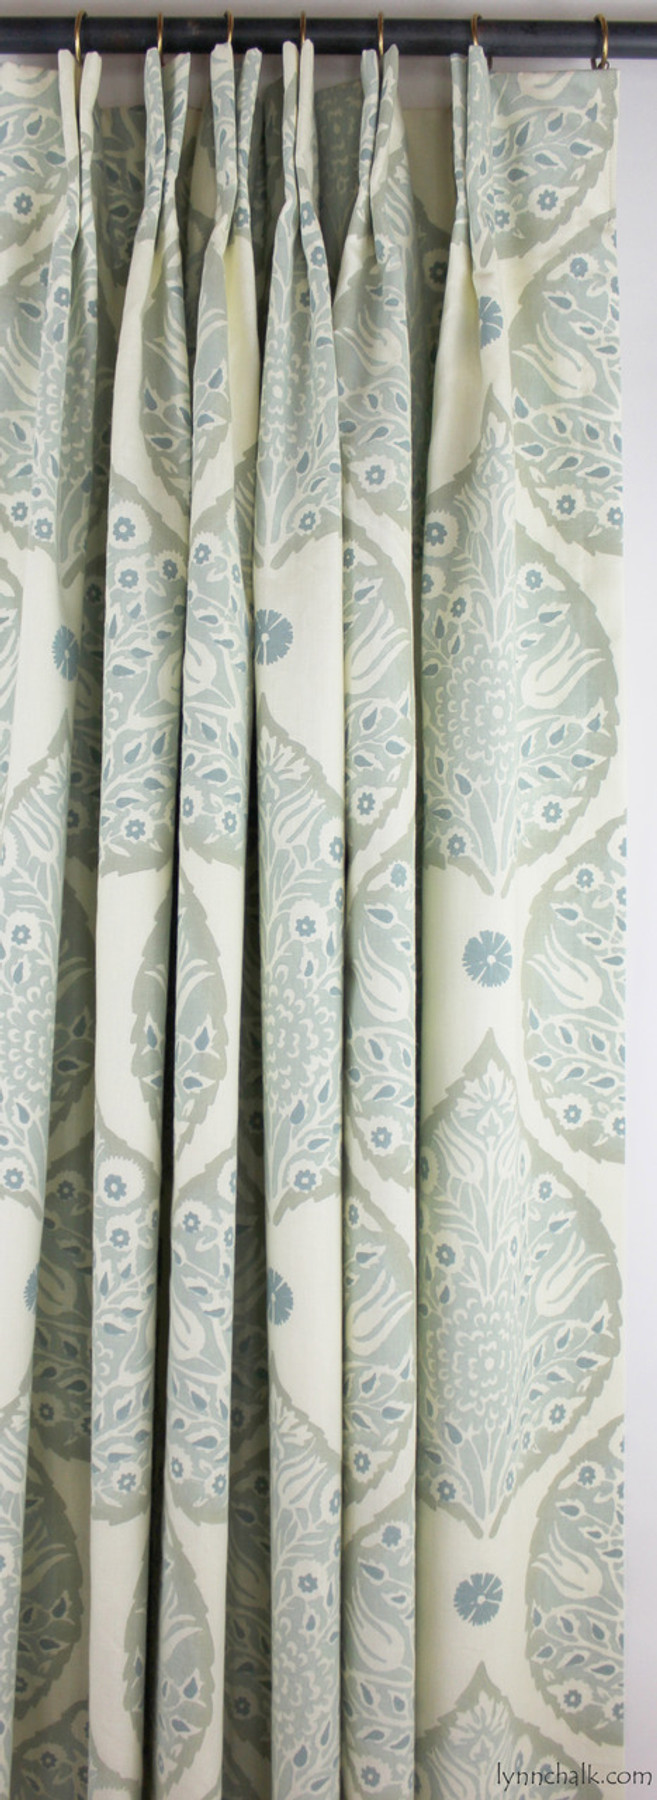 Galbraith & Paul Roman Shades in Lotus (shown in Lotus Lapis on Logan Natural Linen-comes in several colors)